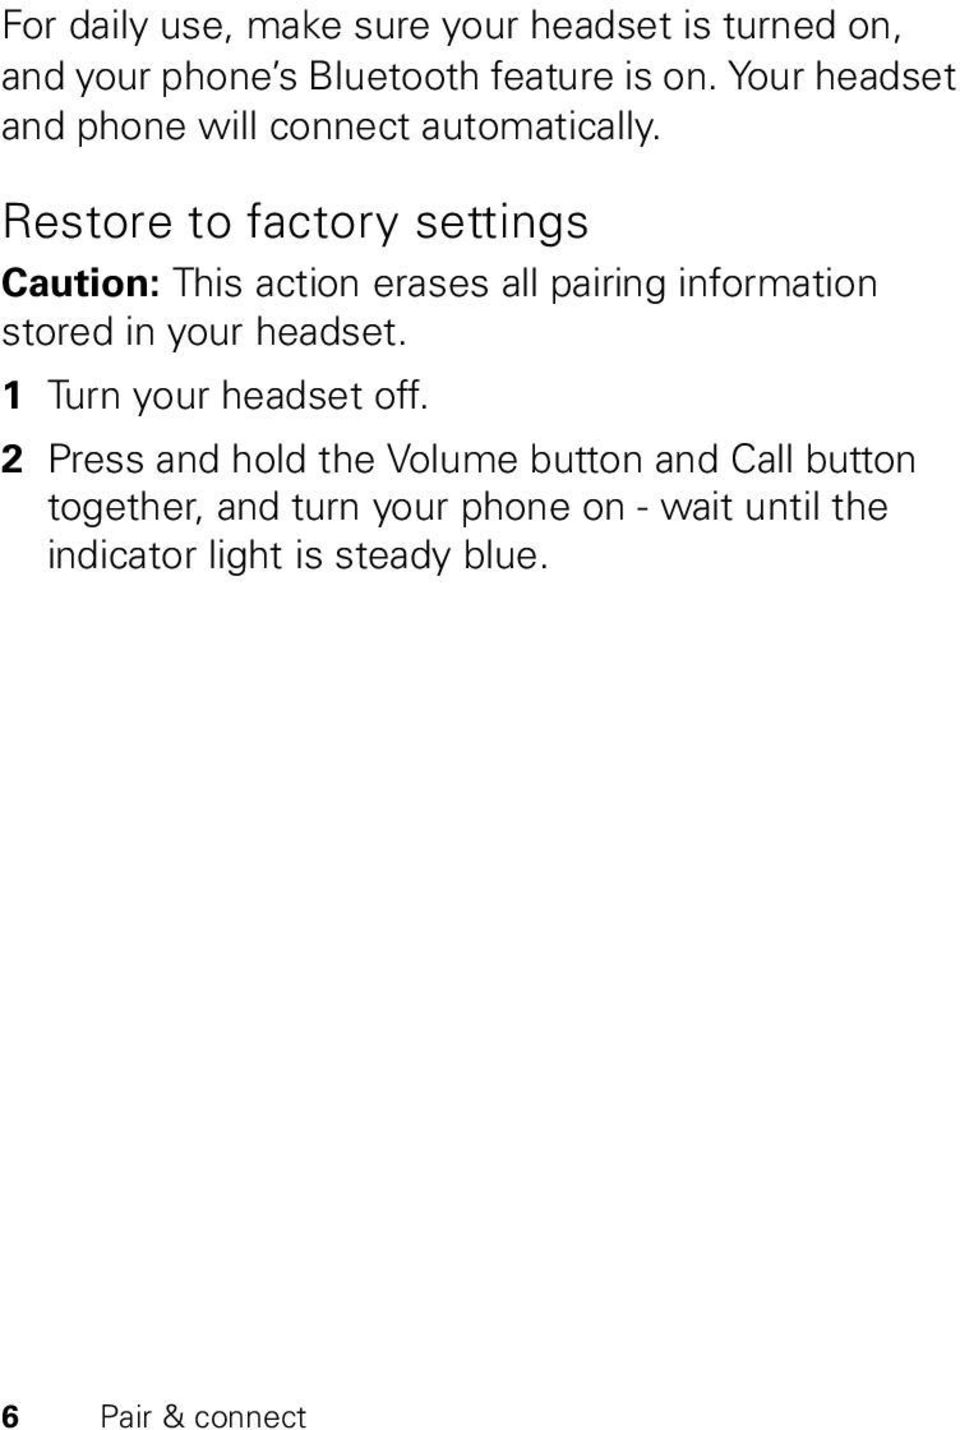 Restore to factory settings Caution: This action erases all pairing information stored in your headset.